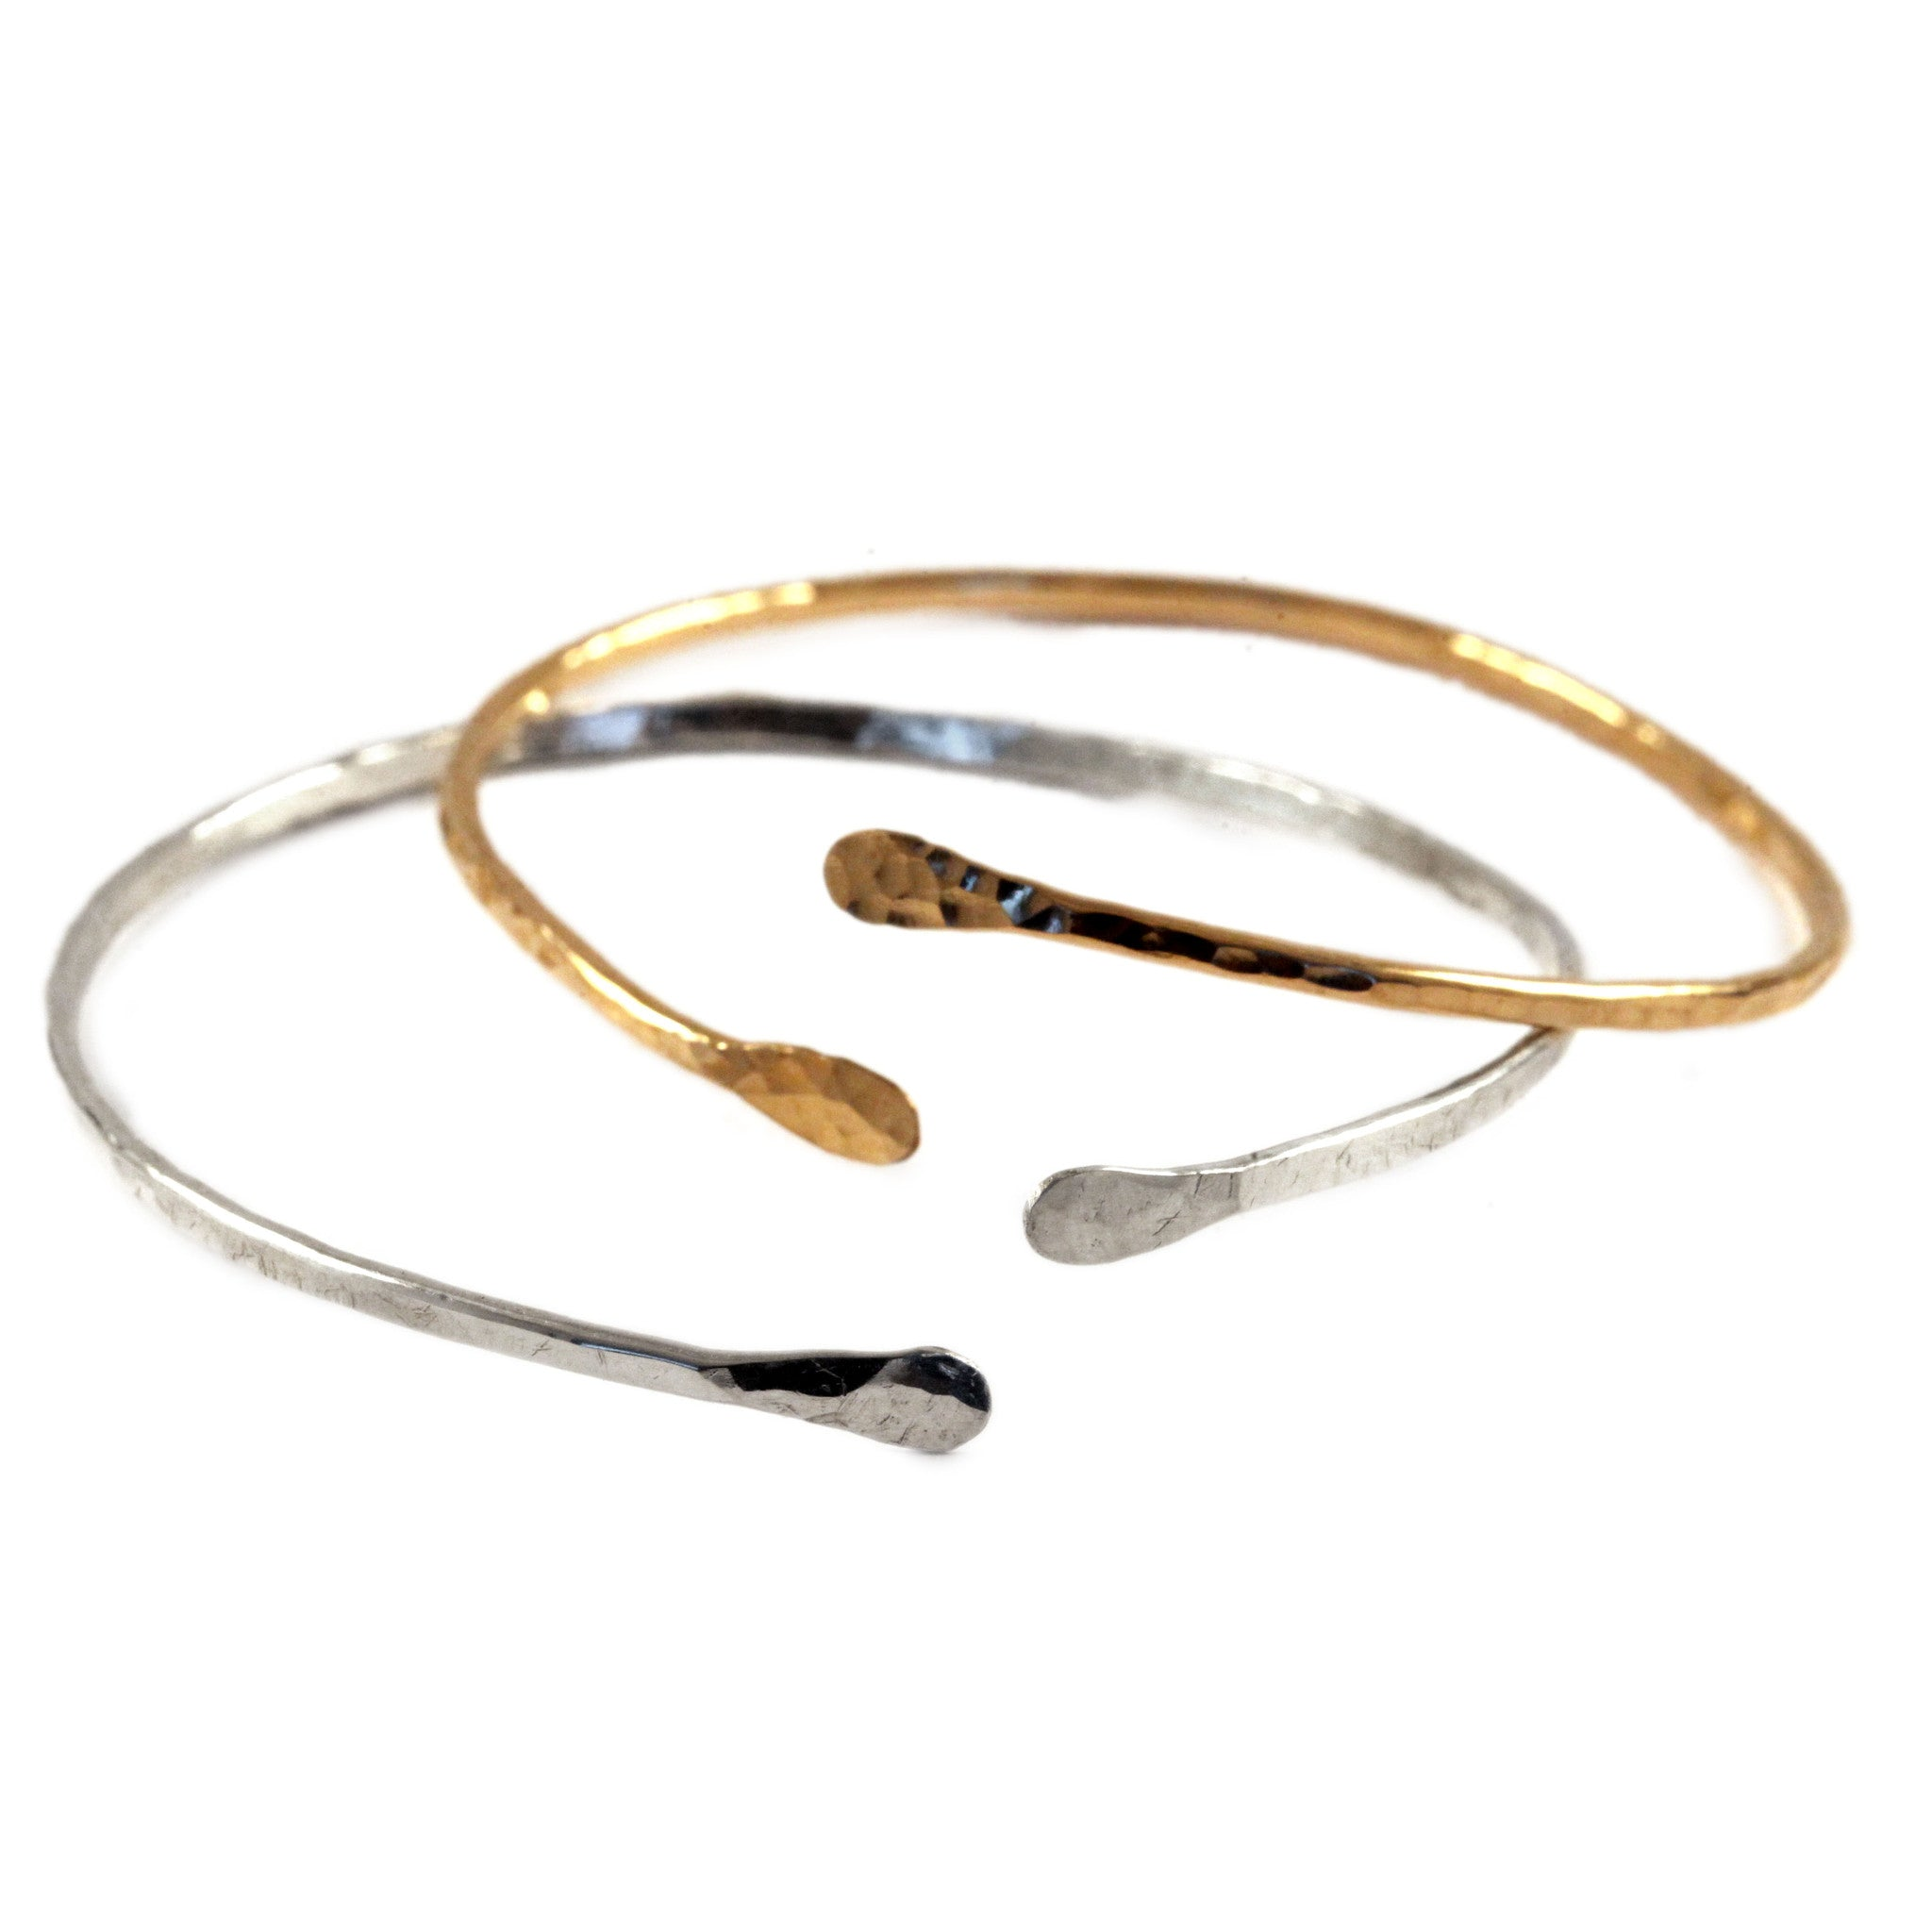 products mother cuff sydney bangles gold bracelet bangle filled leah alexandra hammered